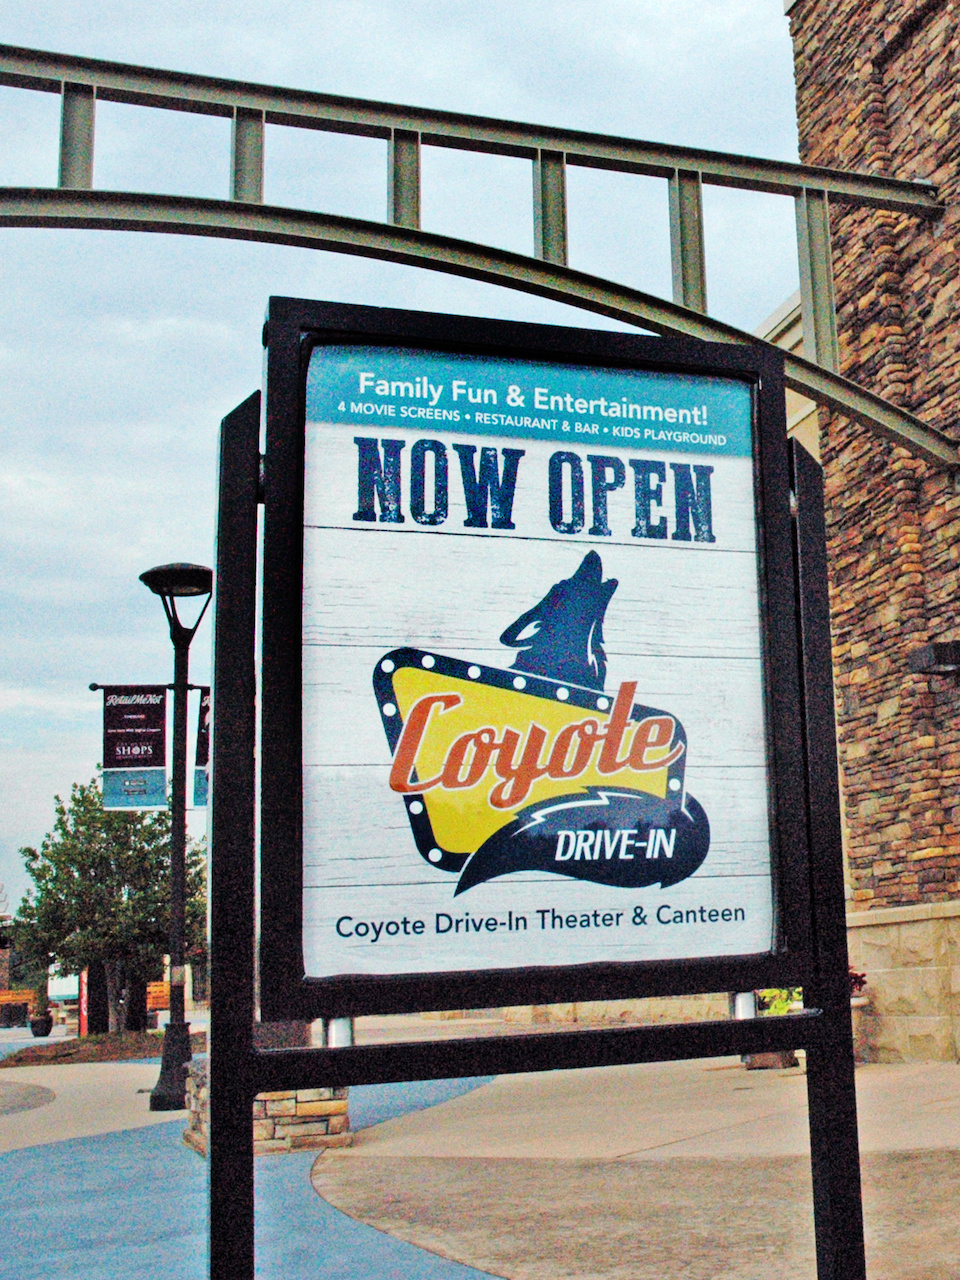 The Coyote Drive-In & Canteen is conveniently located on the northwest side of the Outlet Shops of Grand River in Leeds.